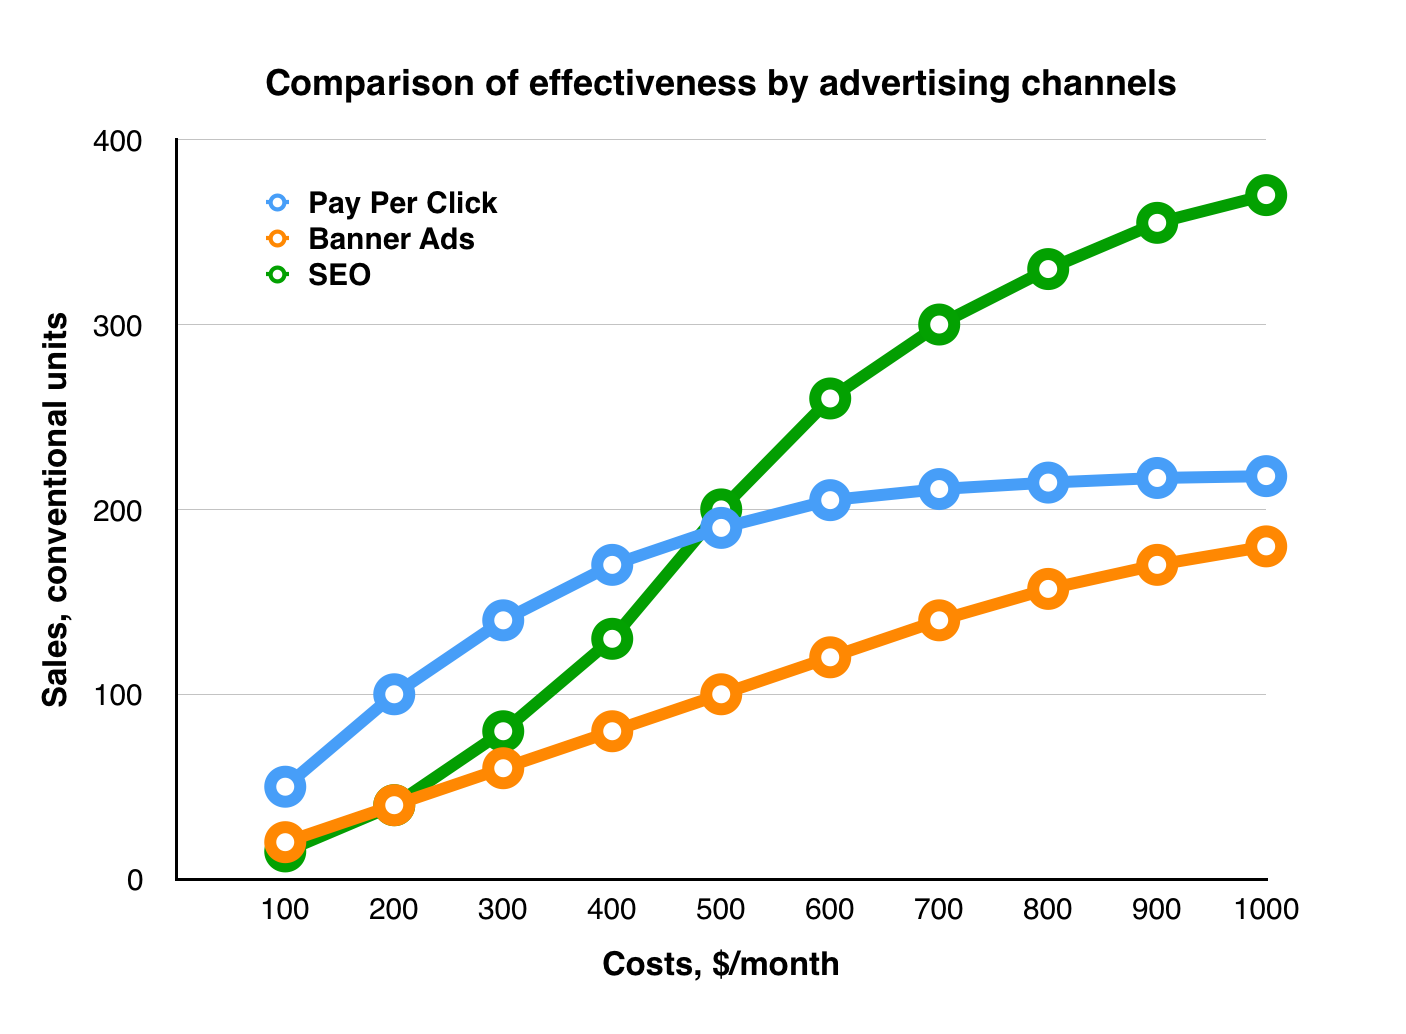 Comparison of effectiveness by advertising channels